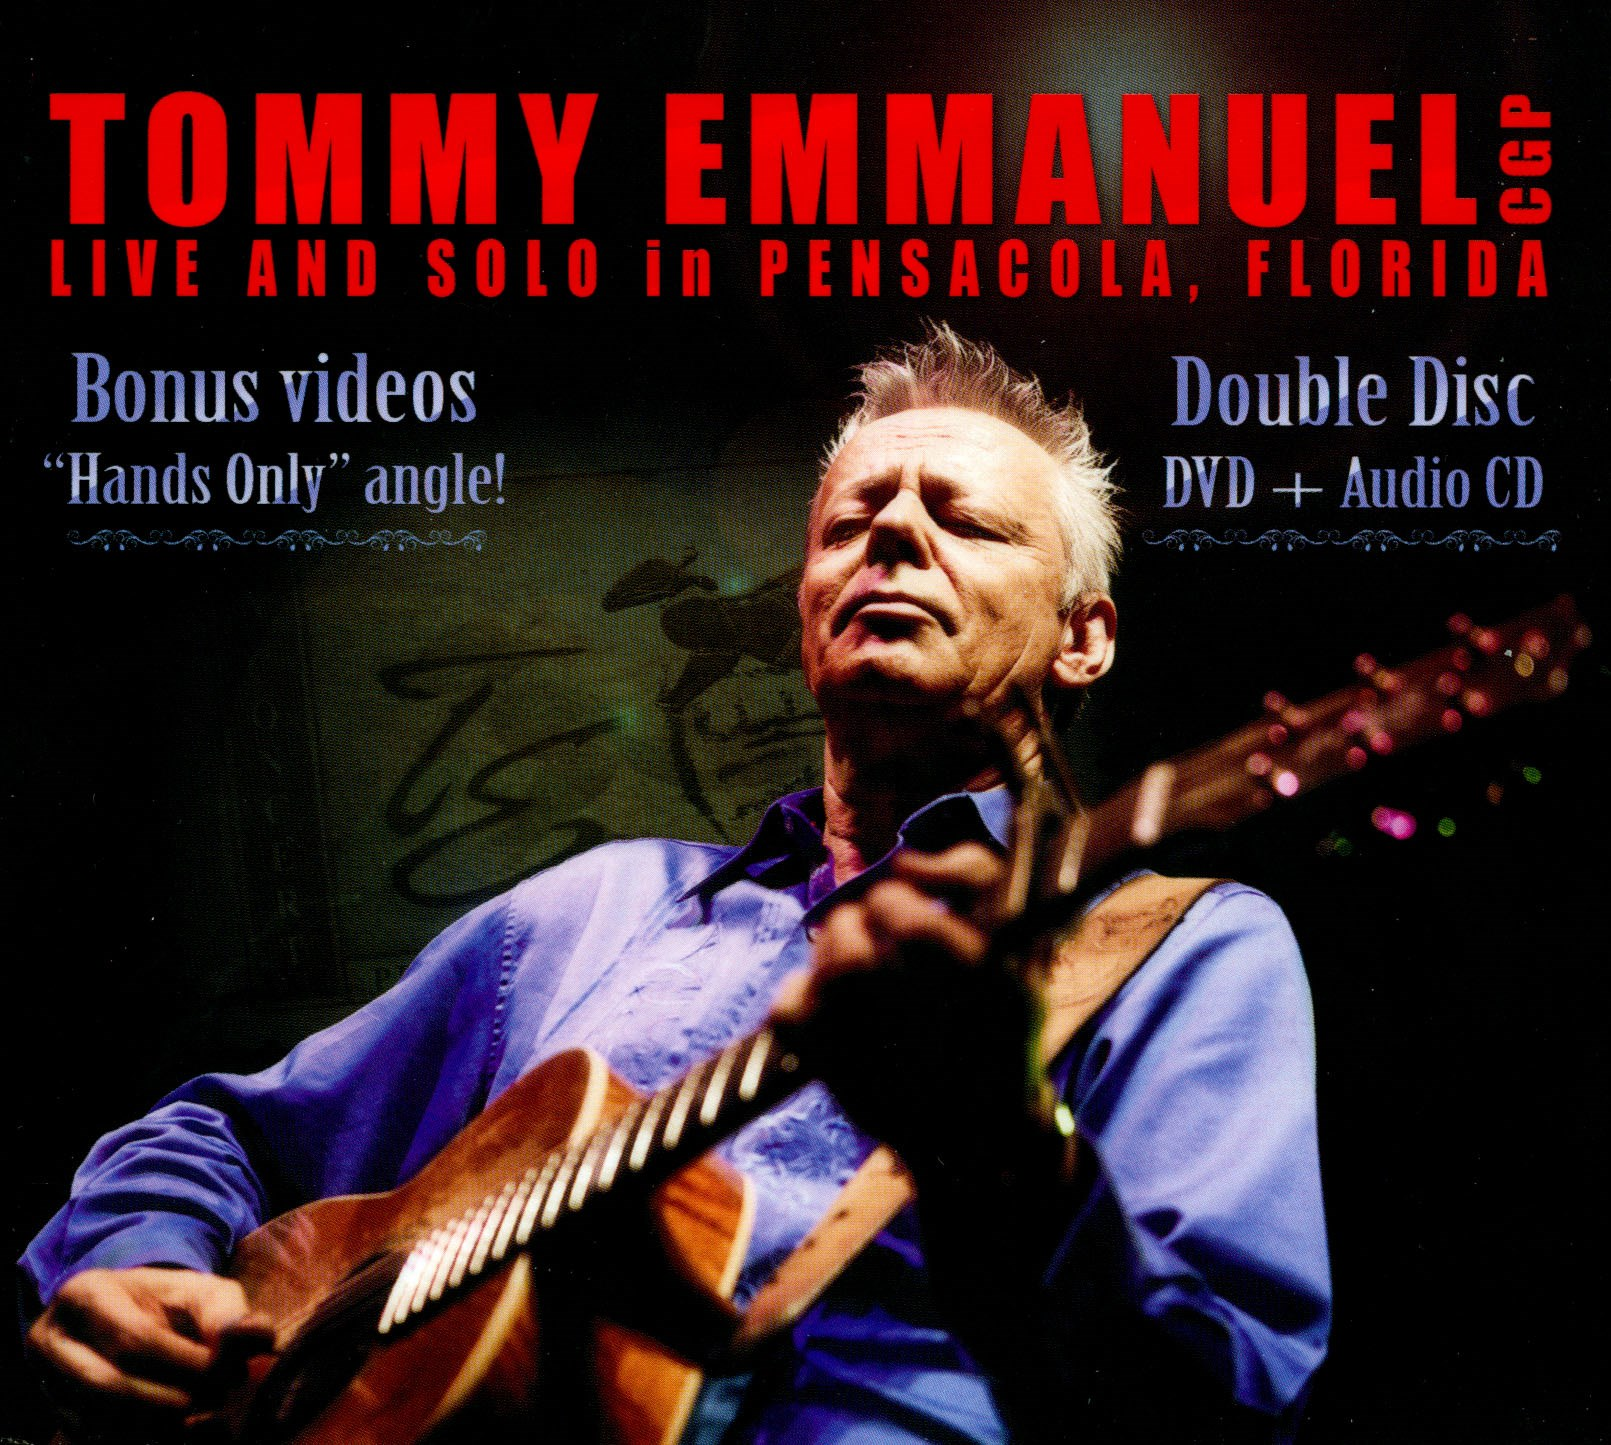 Tommy Emmanuel: Live and Solo in Pensacola, Florida